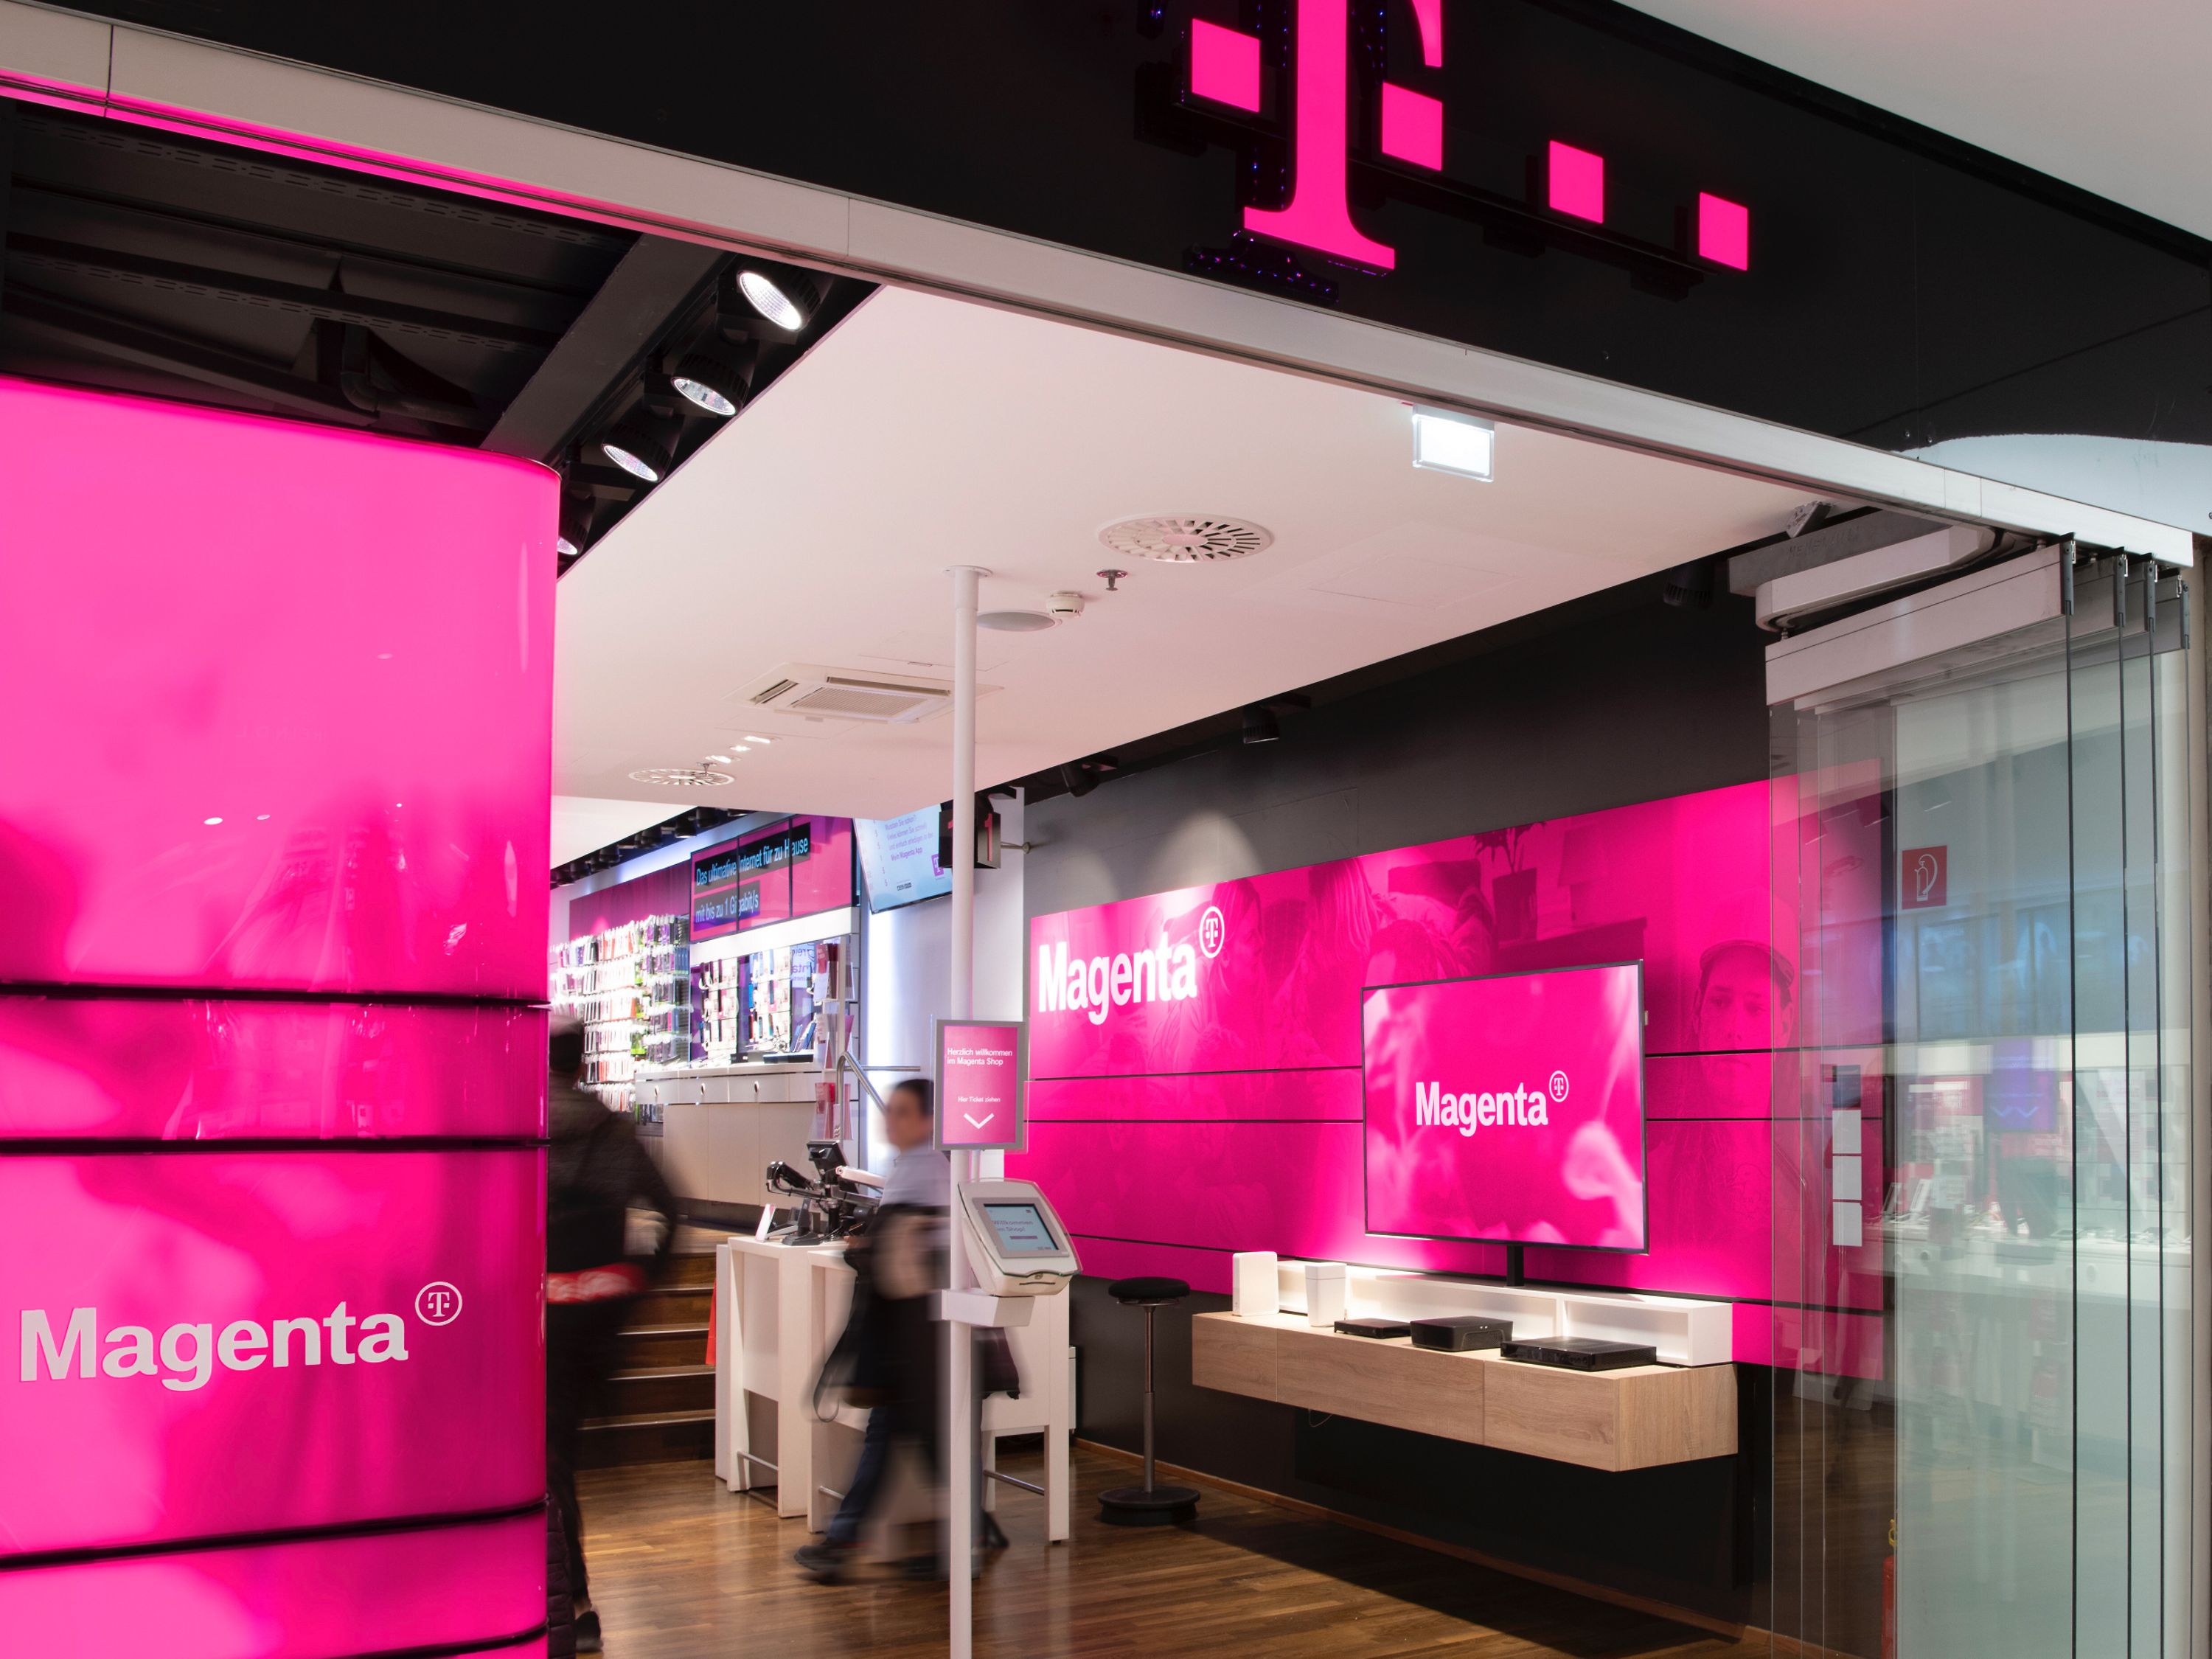 New brand presence in Austria focuses on Magenta.